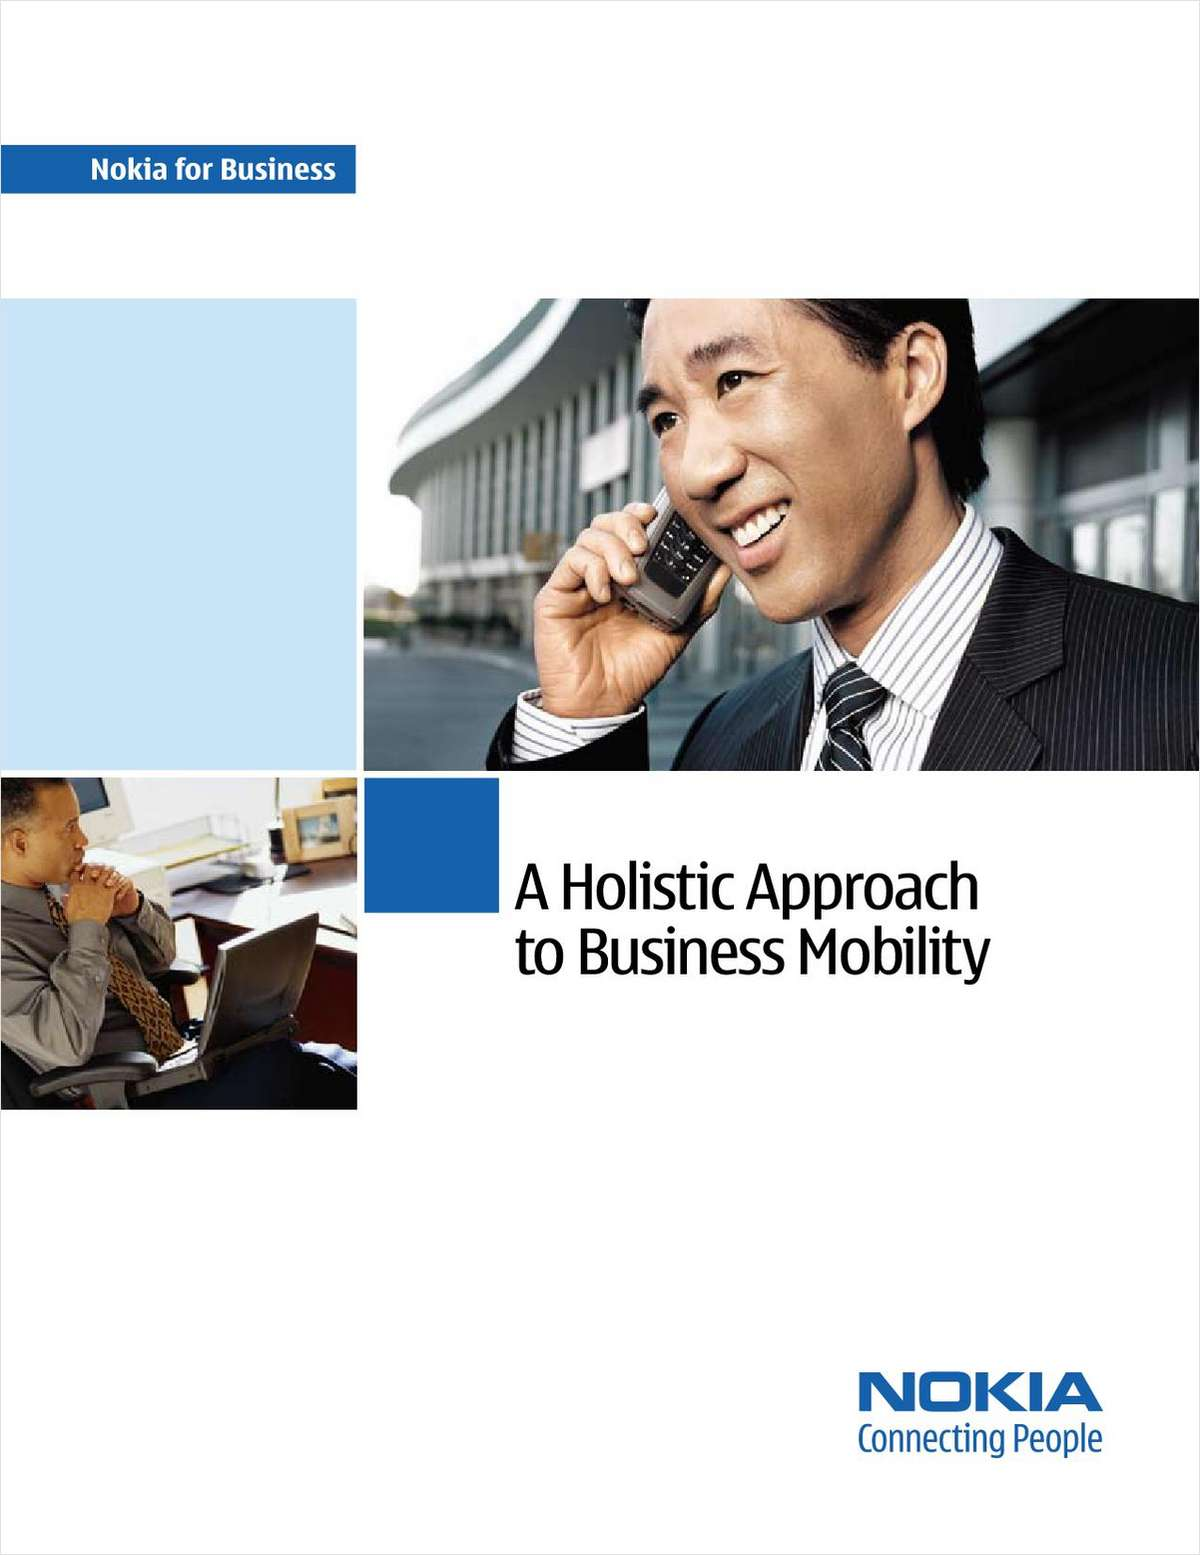 A Holistic Approach to Business Mobility